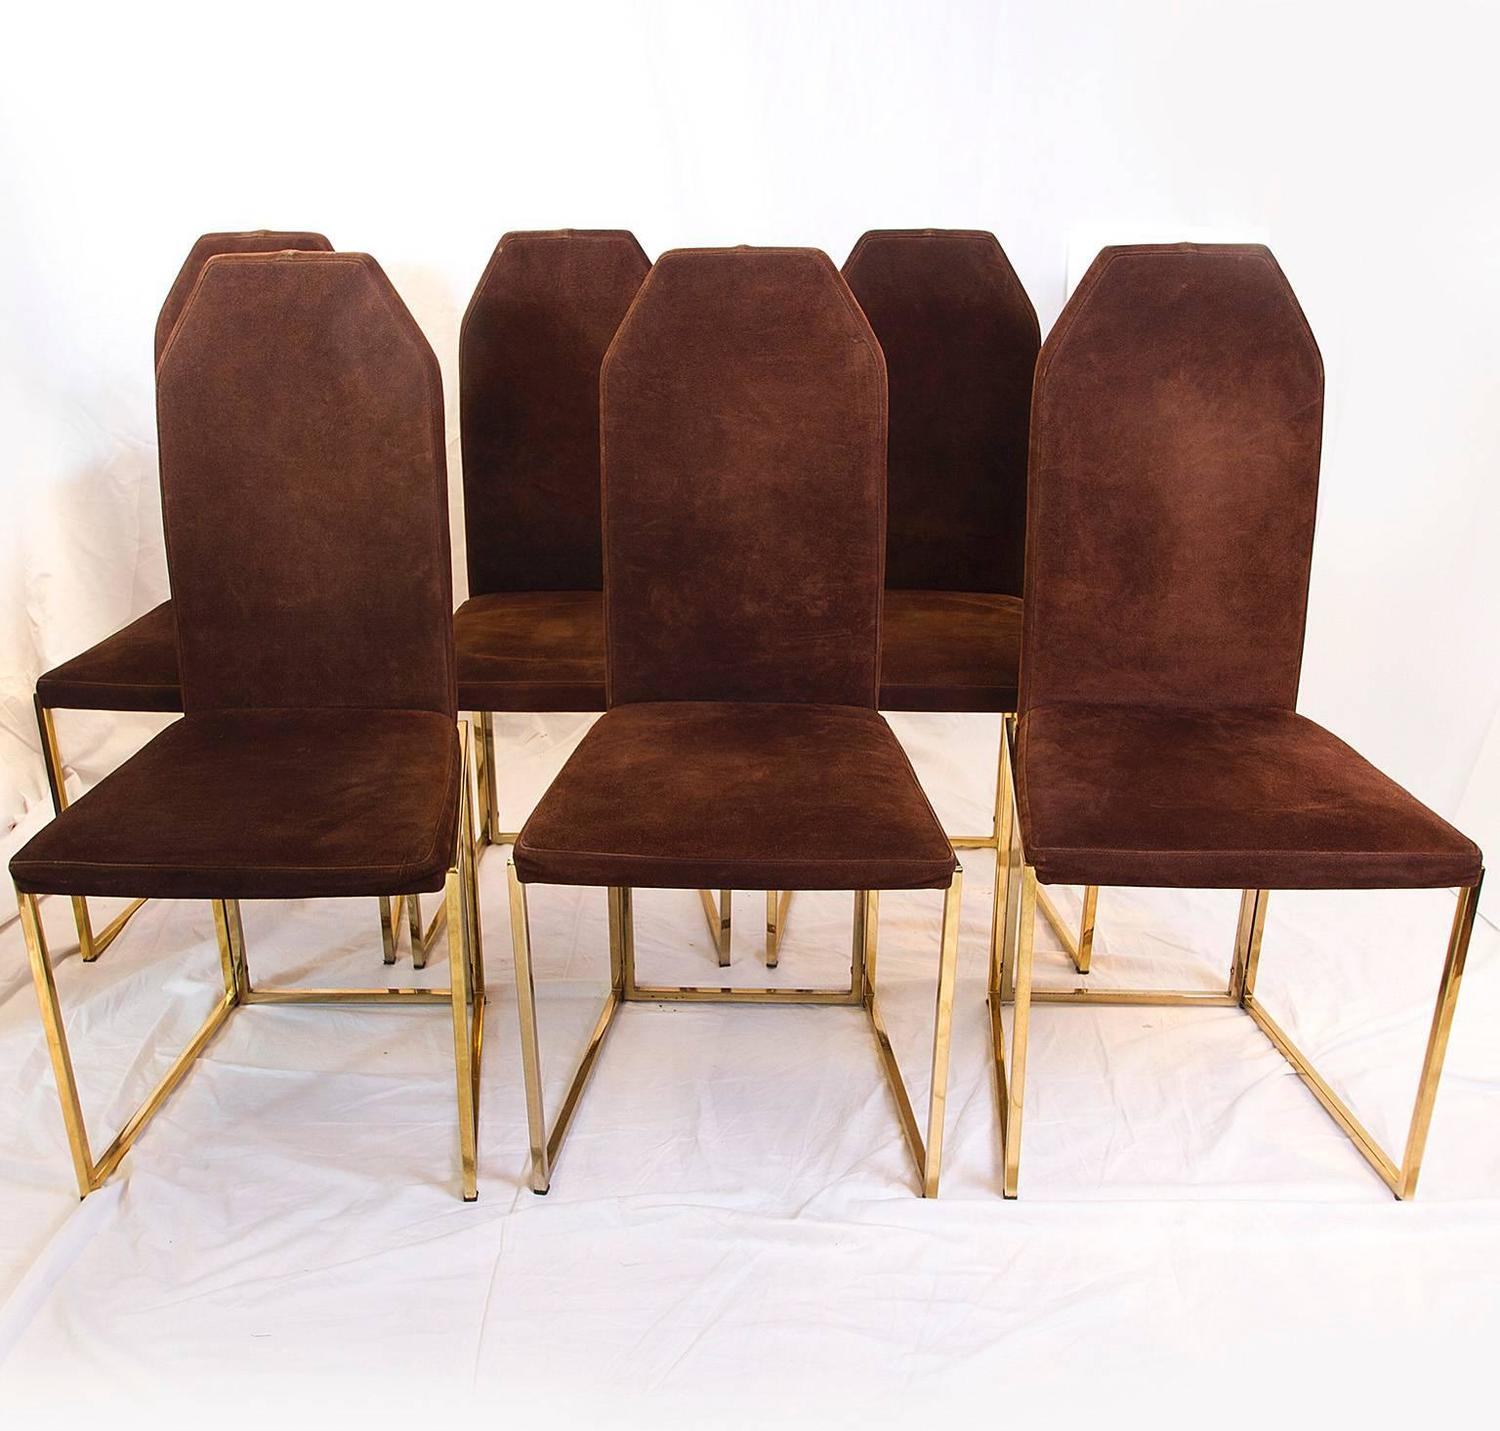 six golden lacquered steel and suede chairs by belgo chrome for sale